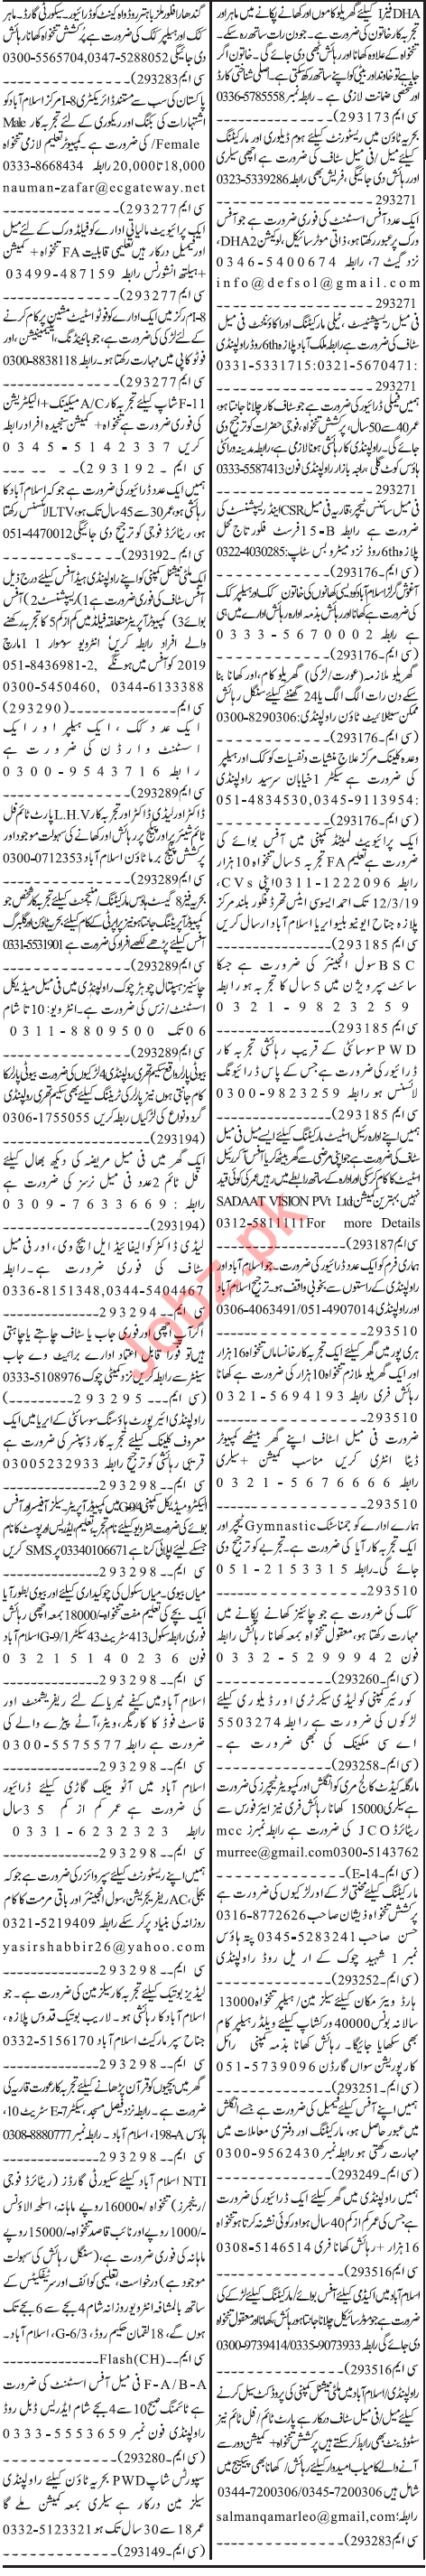 Jang Sunday Classified Ads 10th March 2019 for Miscellaneous 2019